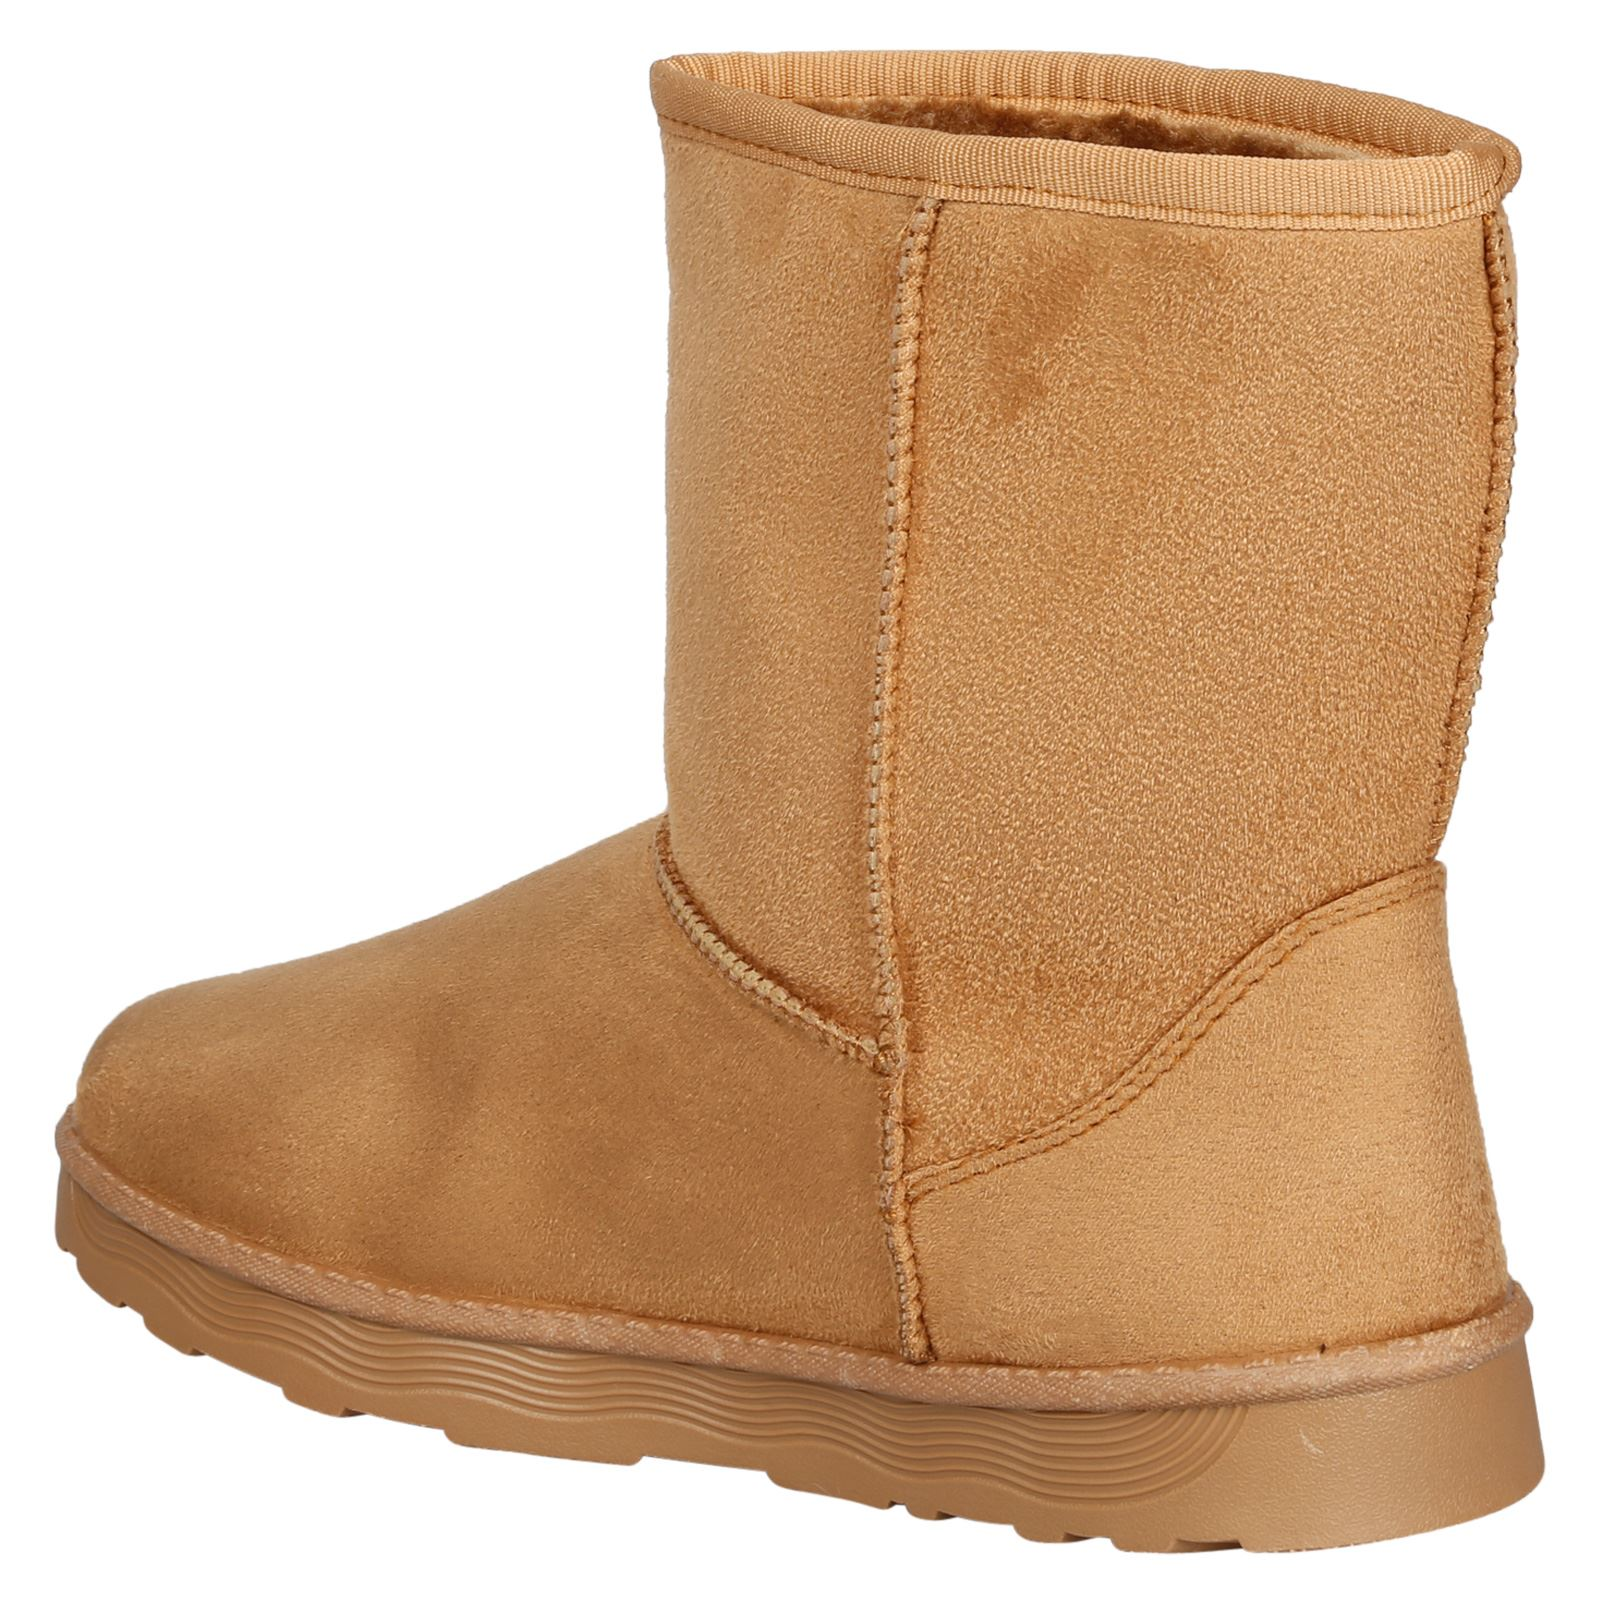 Paisleigh-Womens-Platfrom-Flat-Fur-Lined-Pull-On-Snug-Snow-Boots-Casual-Ladies thumbnail 9